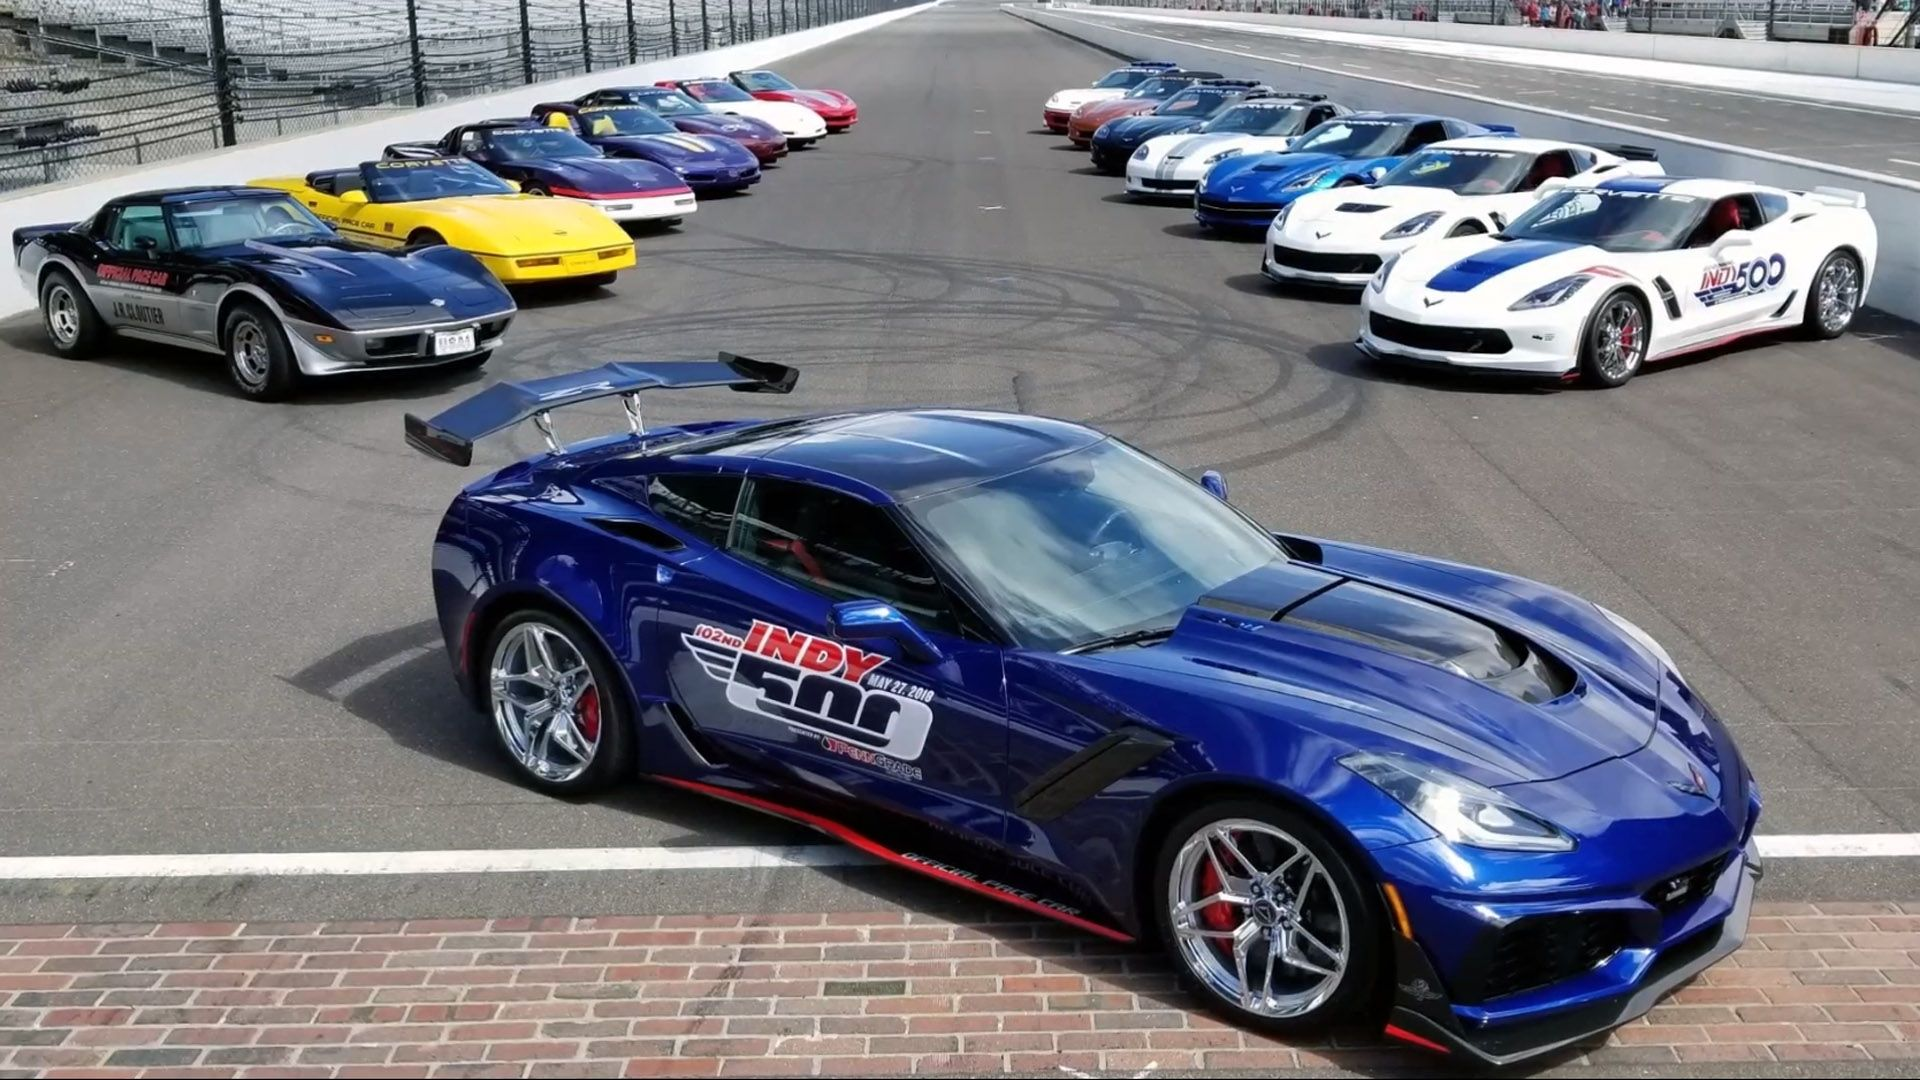 The Chevrolet Corvette Becomes The Pace Car For The 2020 Indy 500 For The 17th Time